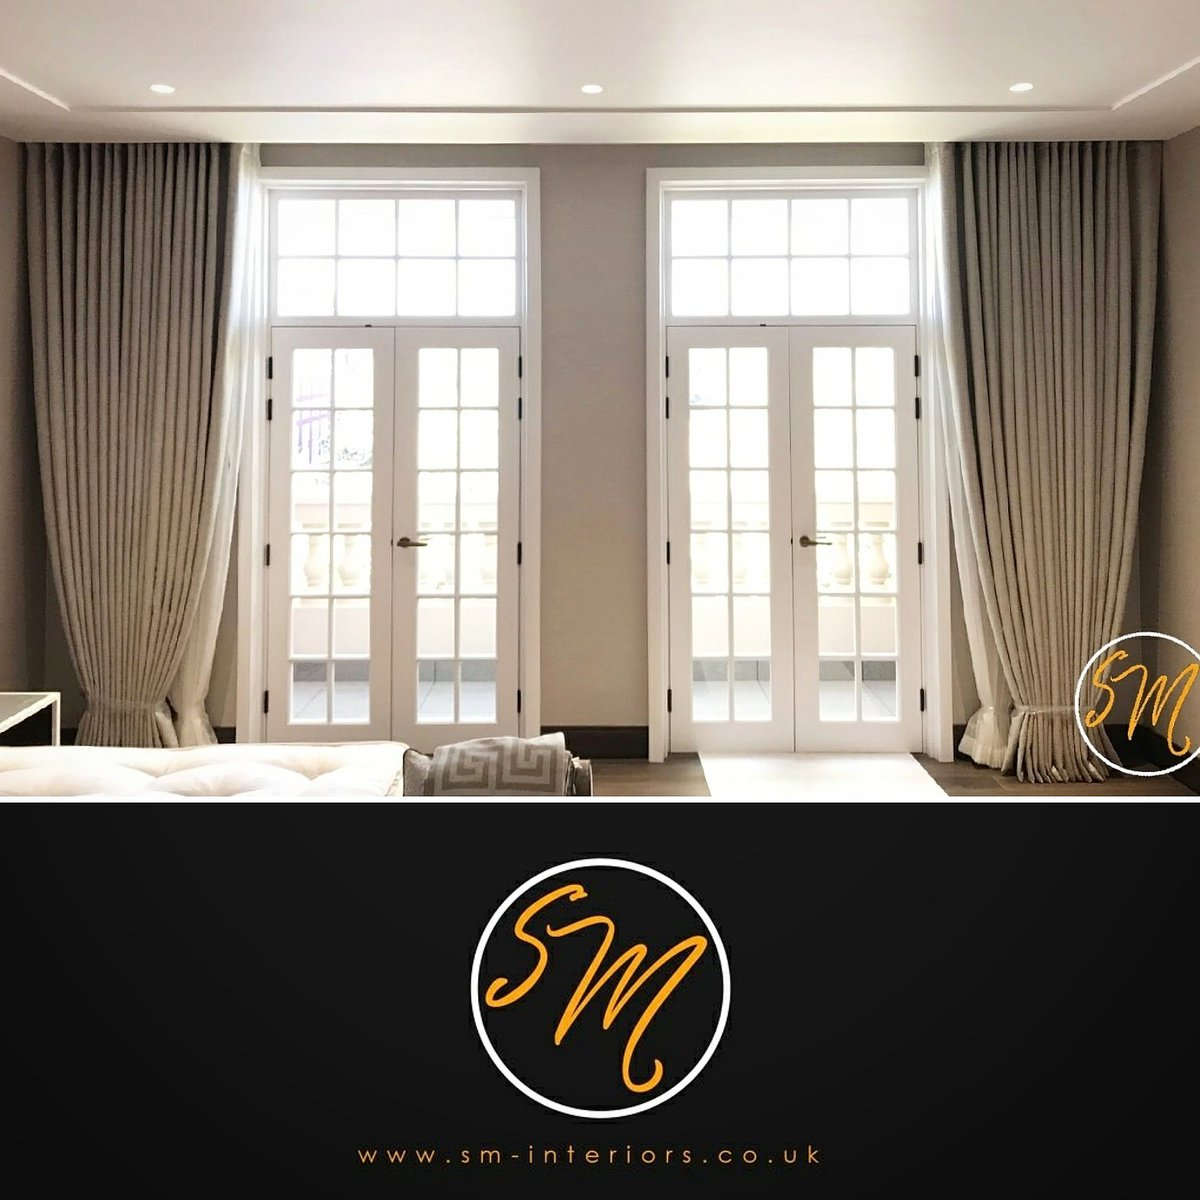 Follow The Beautiful SMInteriors On Instagram Sminteriors InteriorDesign Expertsspecialist In Bespoke Blinds Curtains Furniturepictwitter